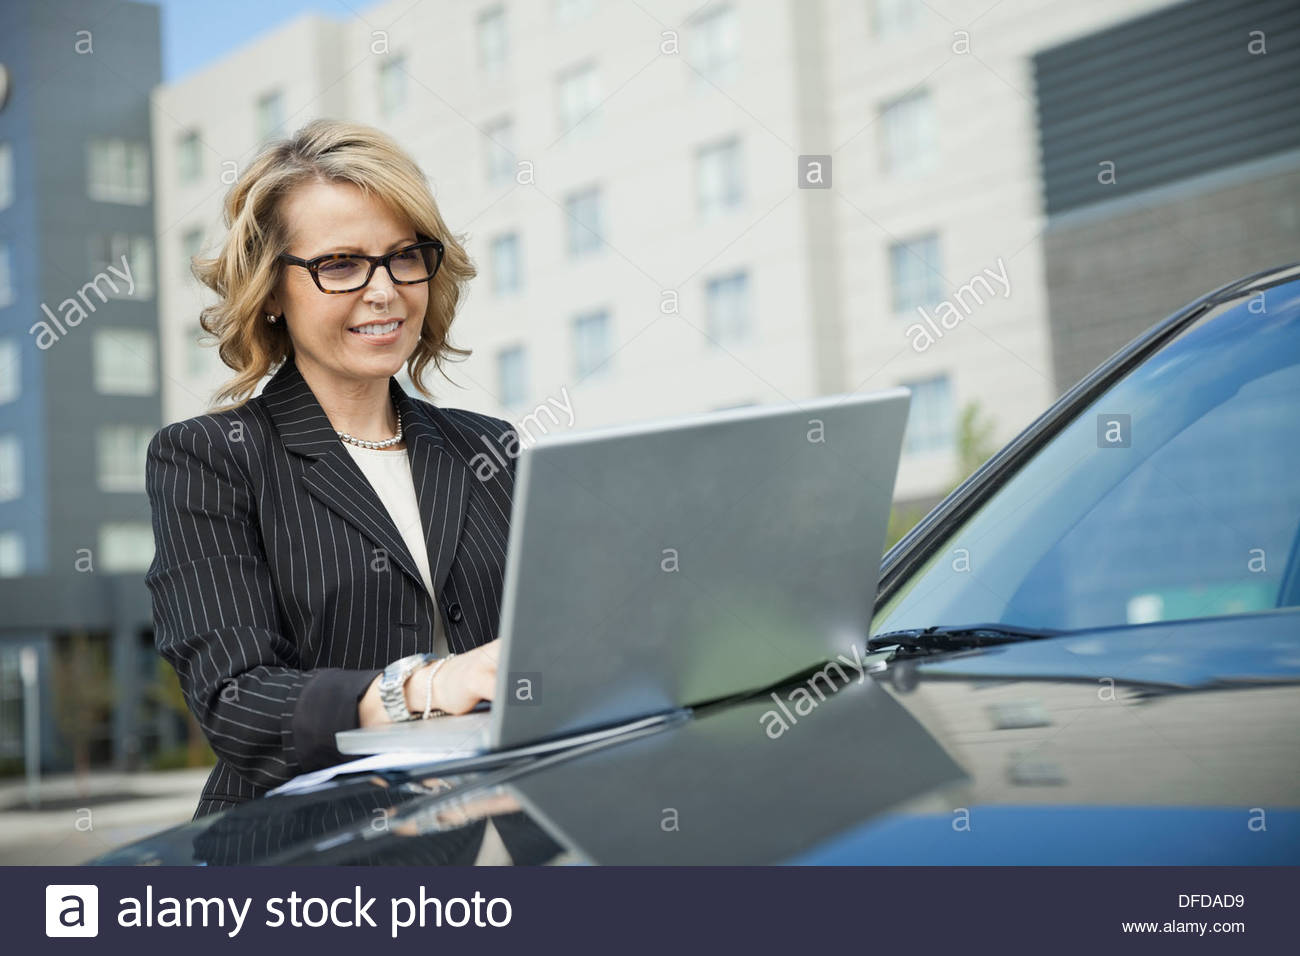 Businesswoman using laptop on car hood outdoors - Stock Image